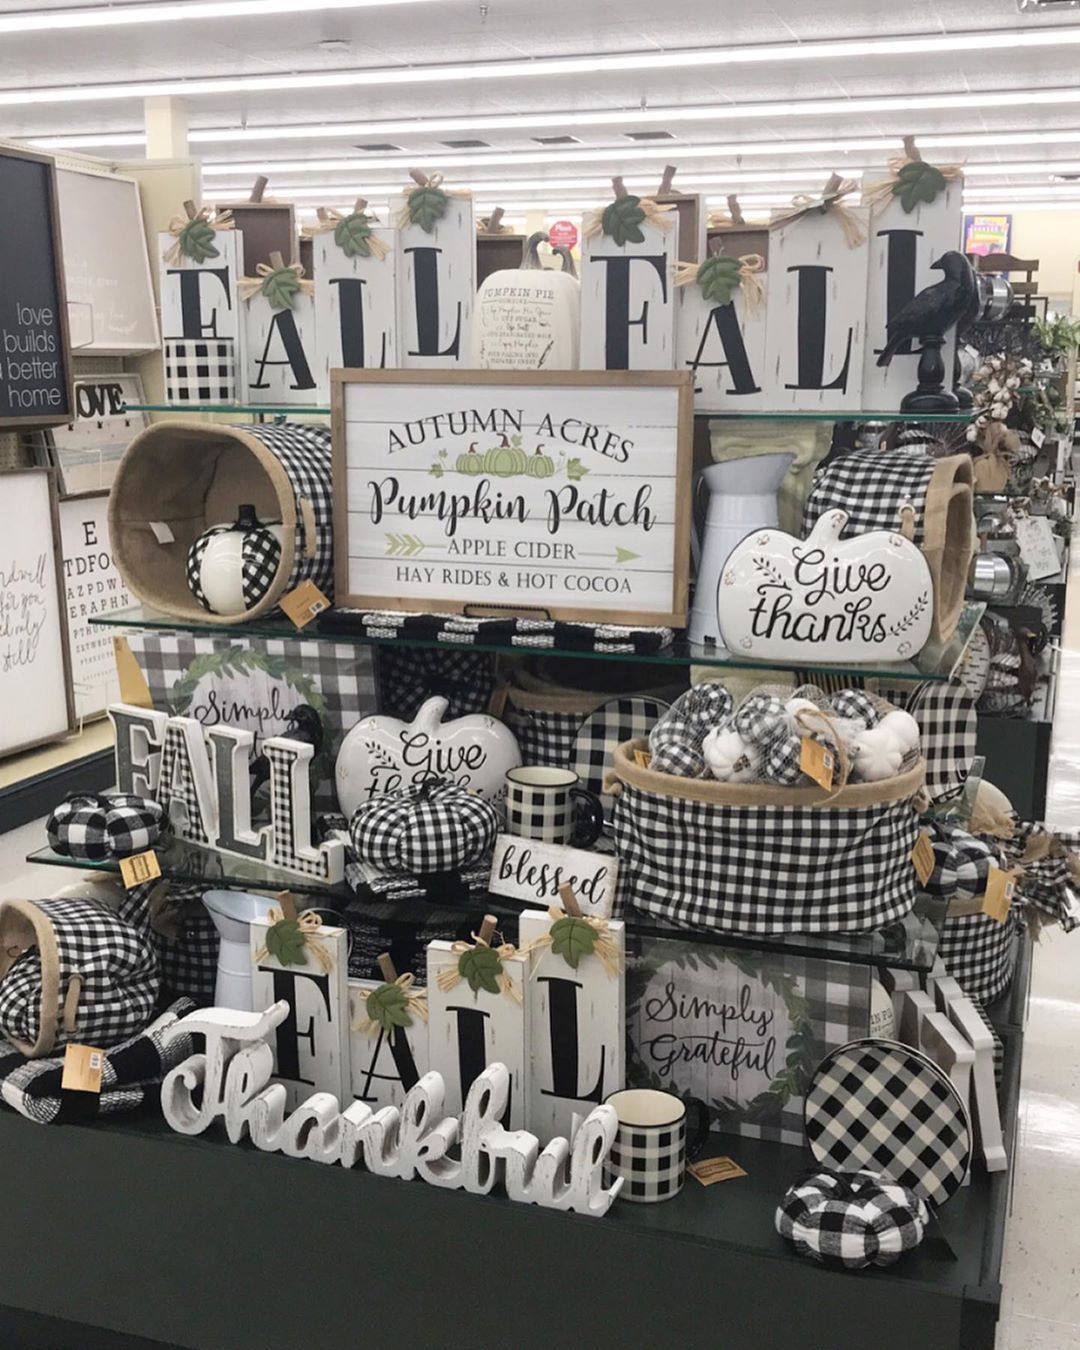 2020 Halloween Decor Hobby Lobby These Hobby Lobby Halloween Decorations Will Make You Howl With